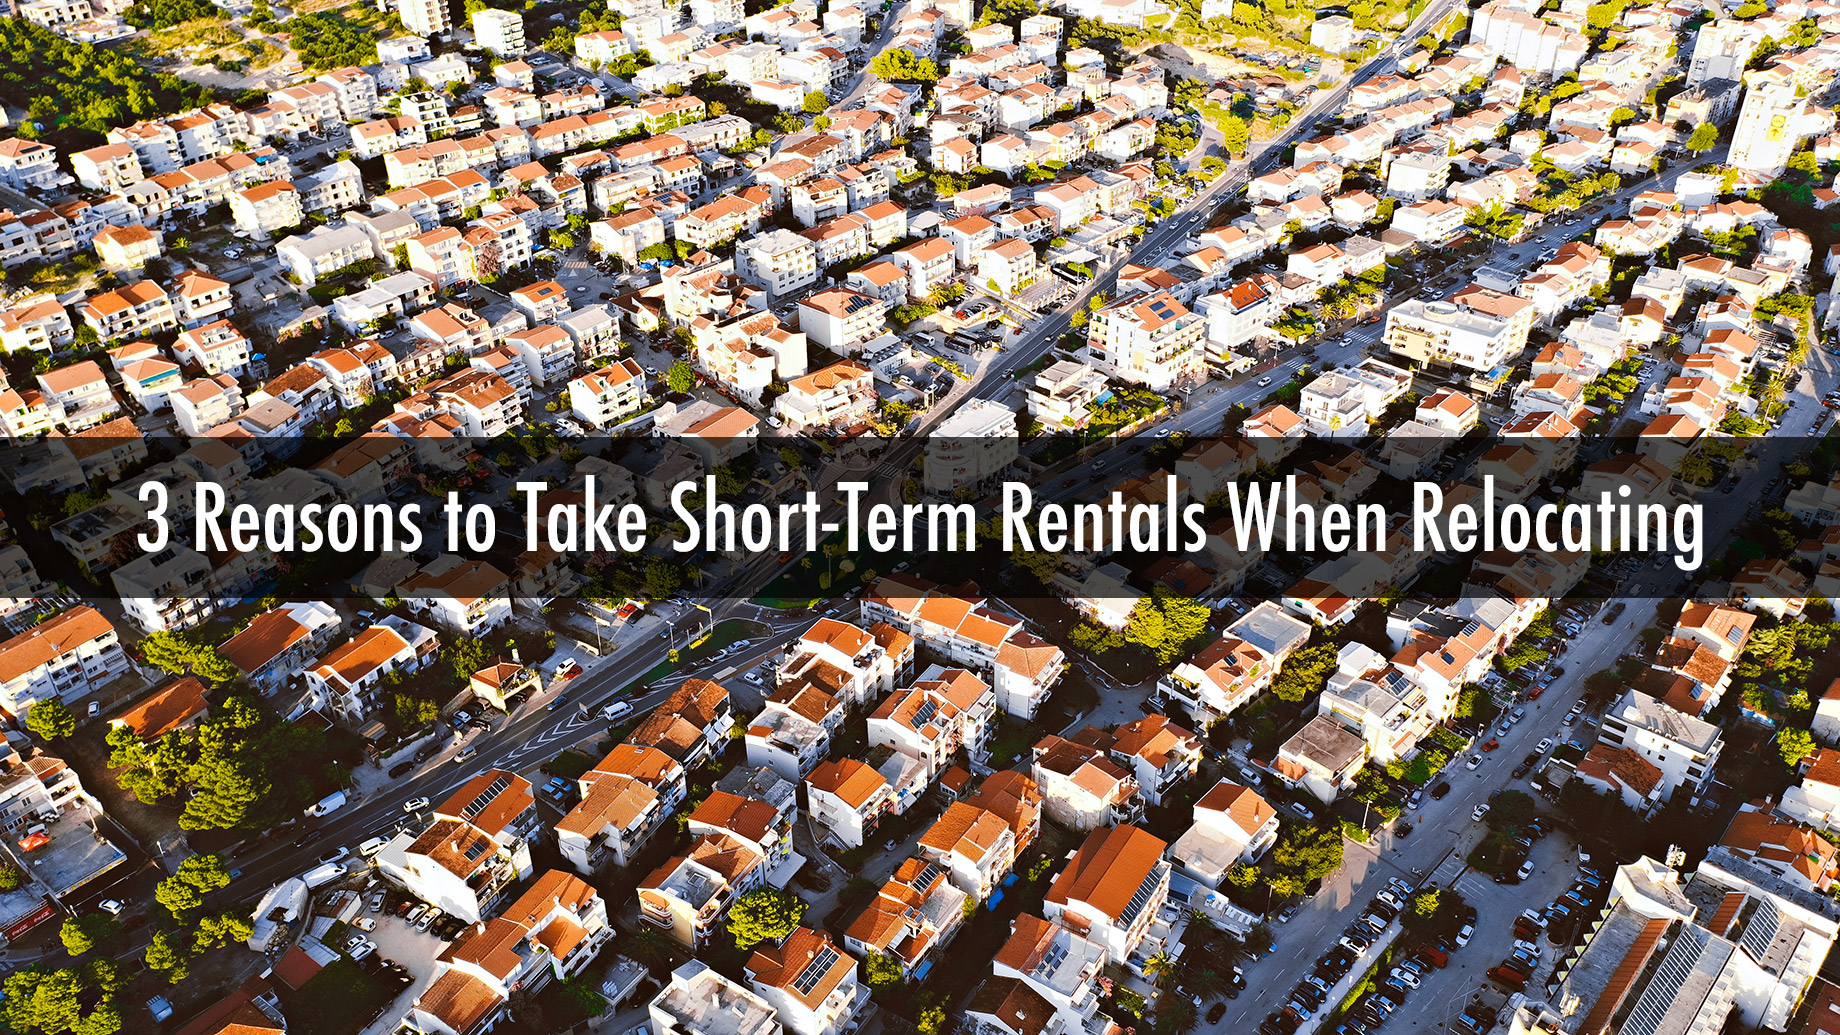 3 Reasons to Take Short-Term Rentals When Relocating